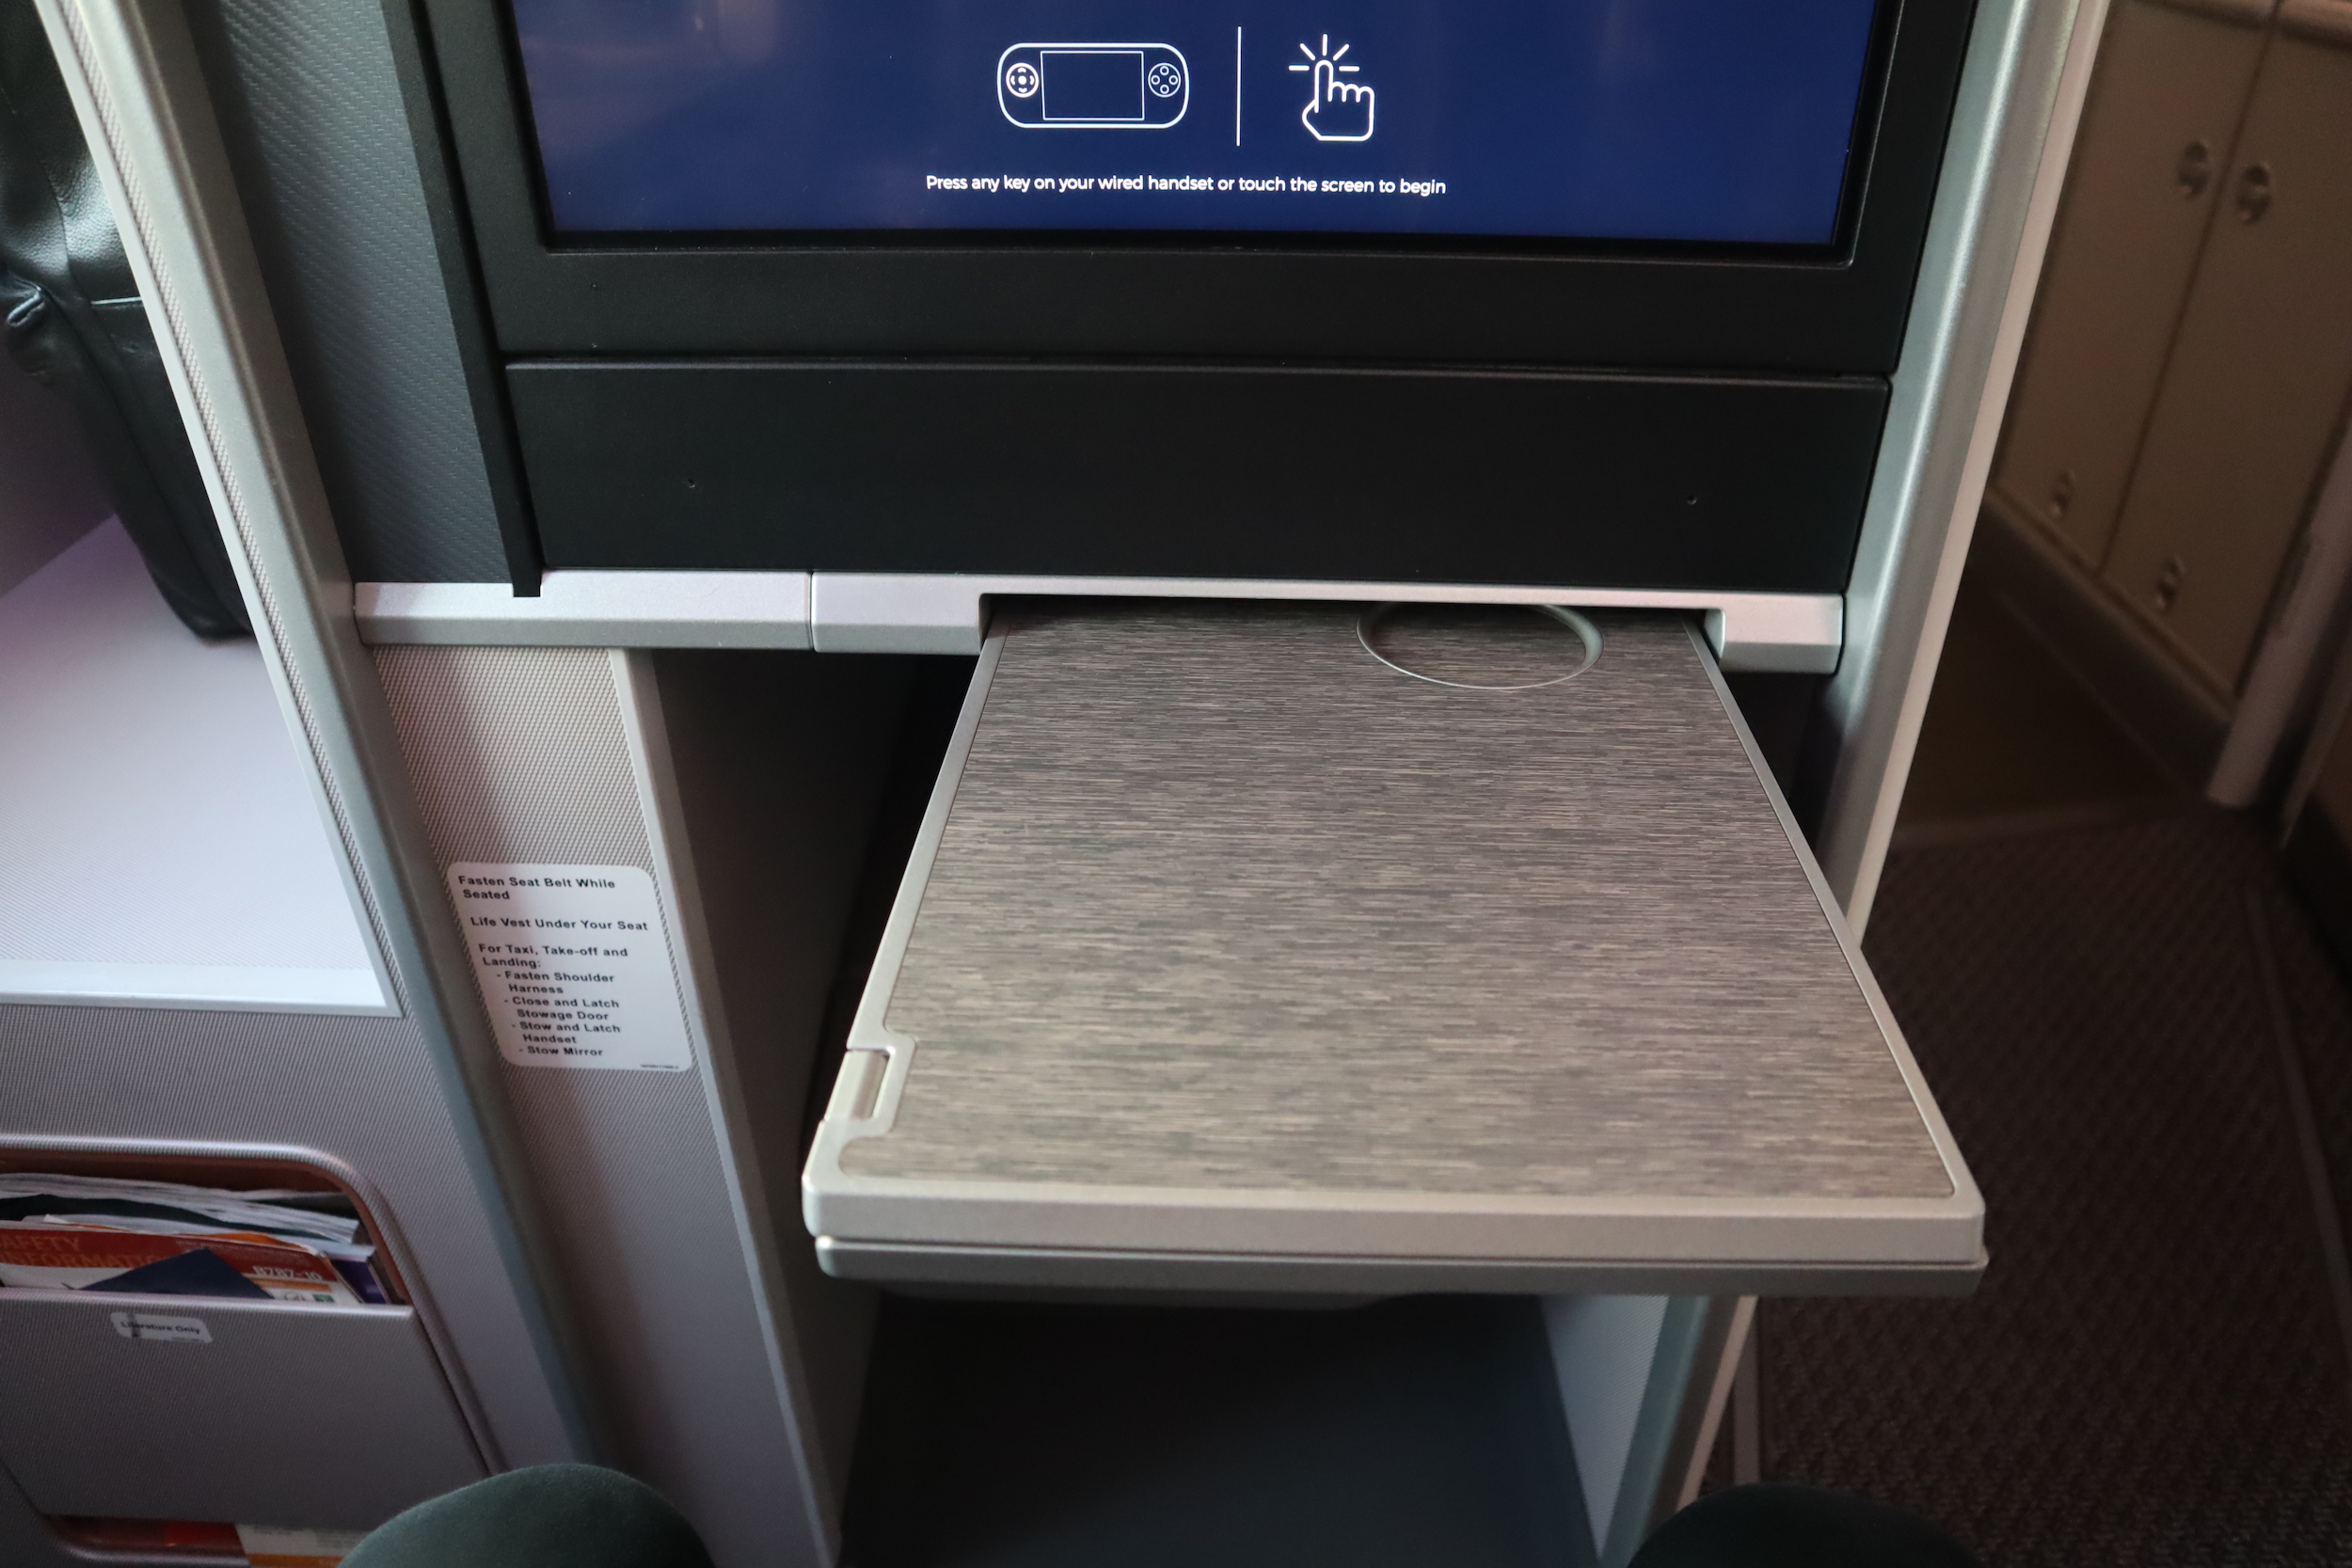 Singapore Airlines 787-10 business class – Tray table